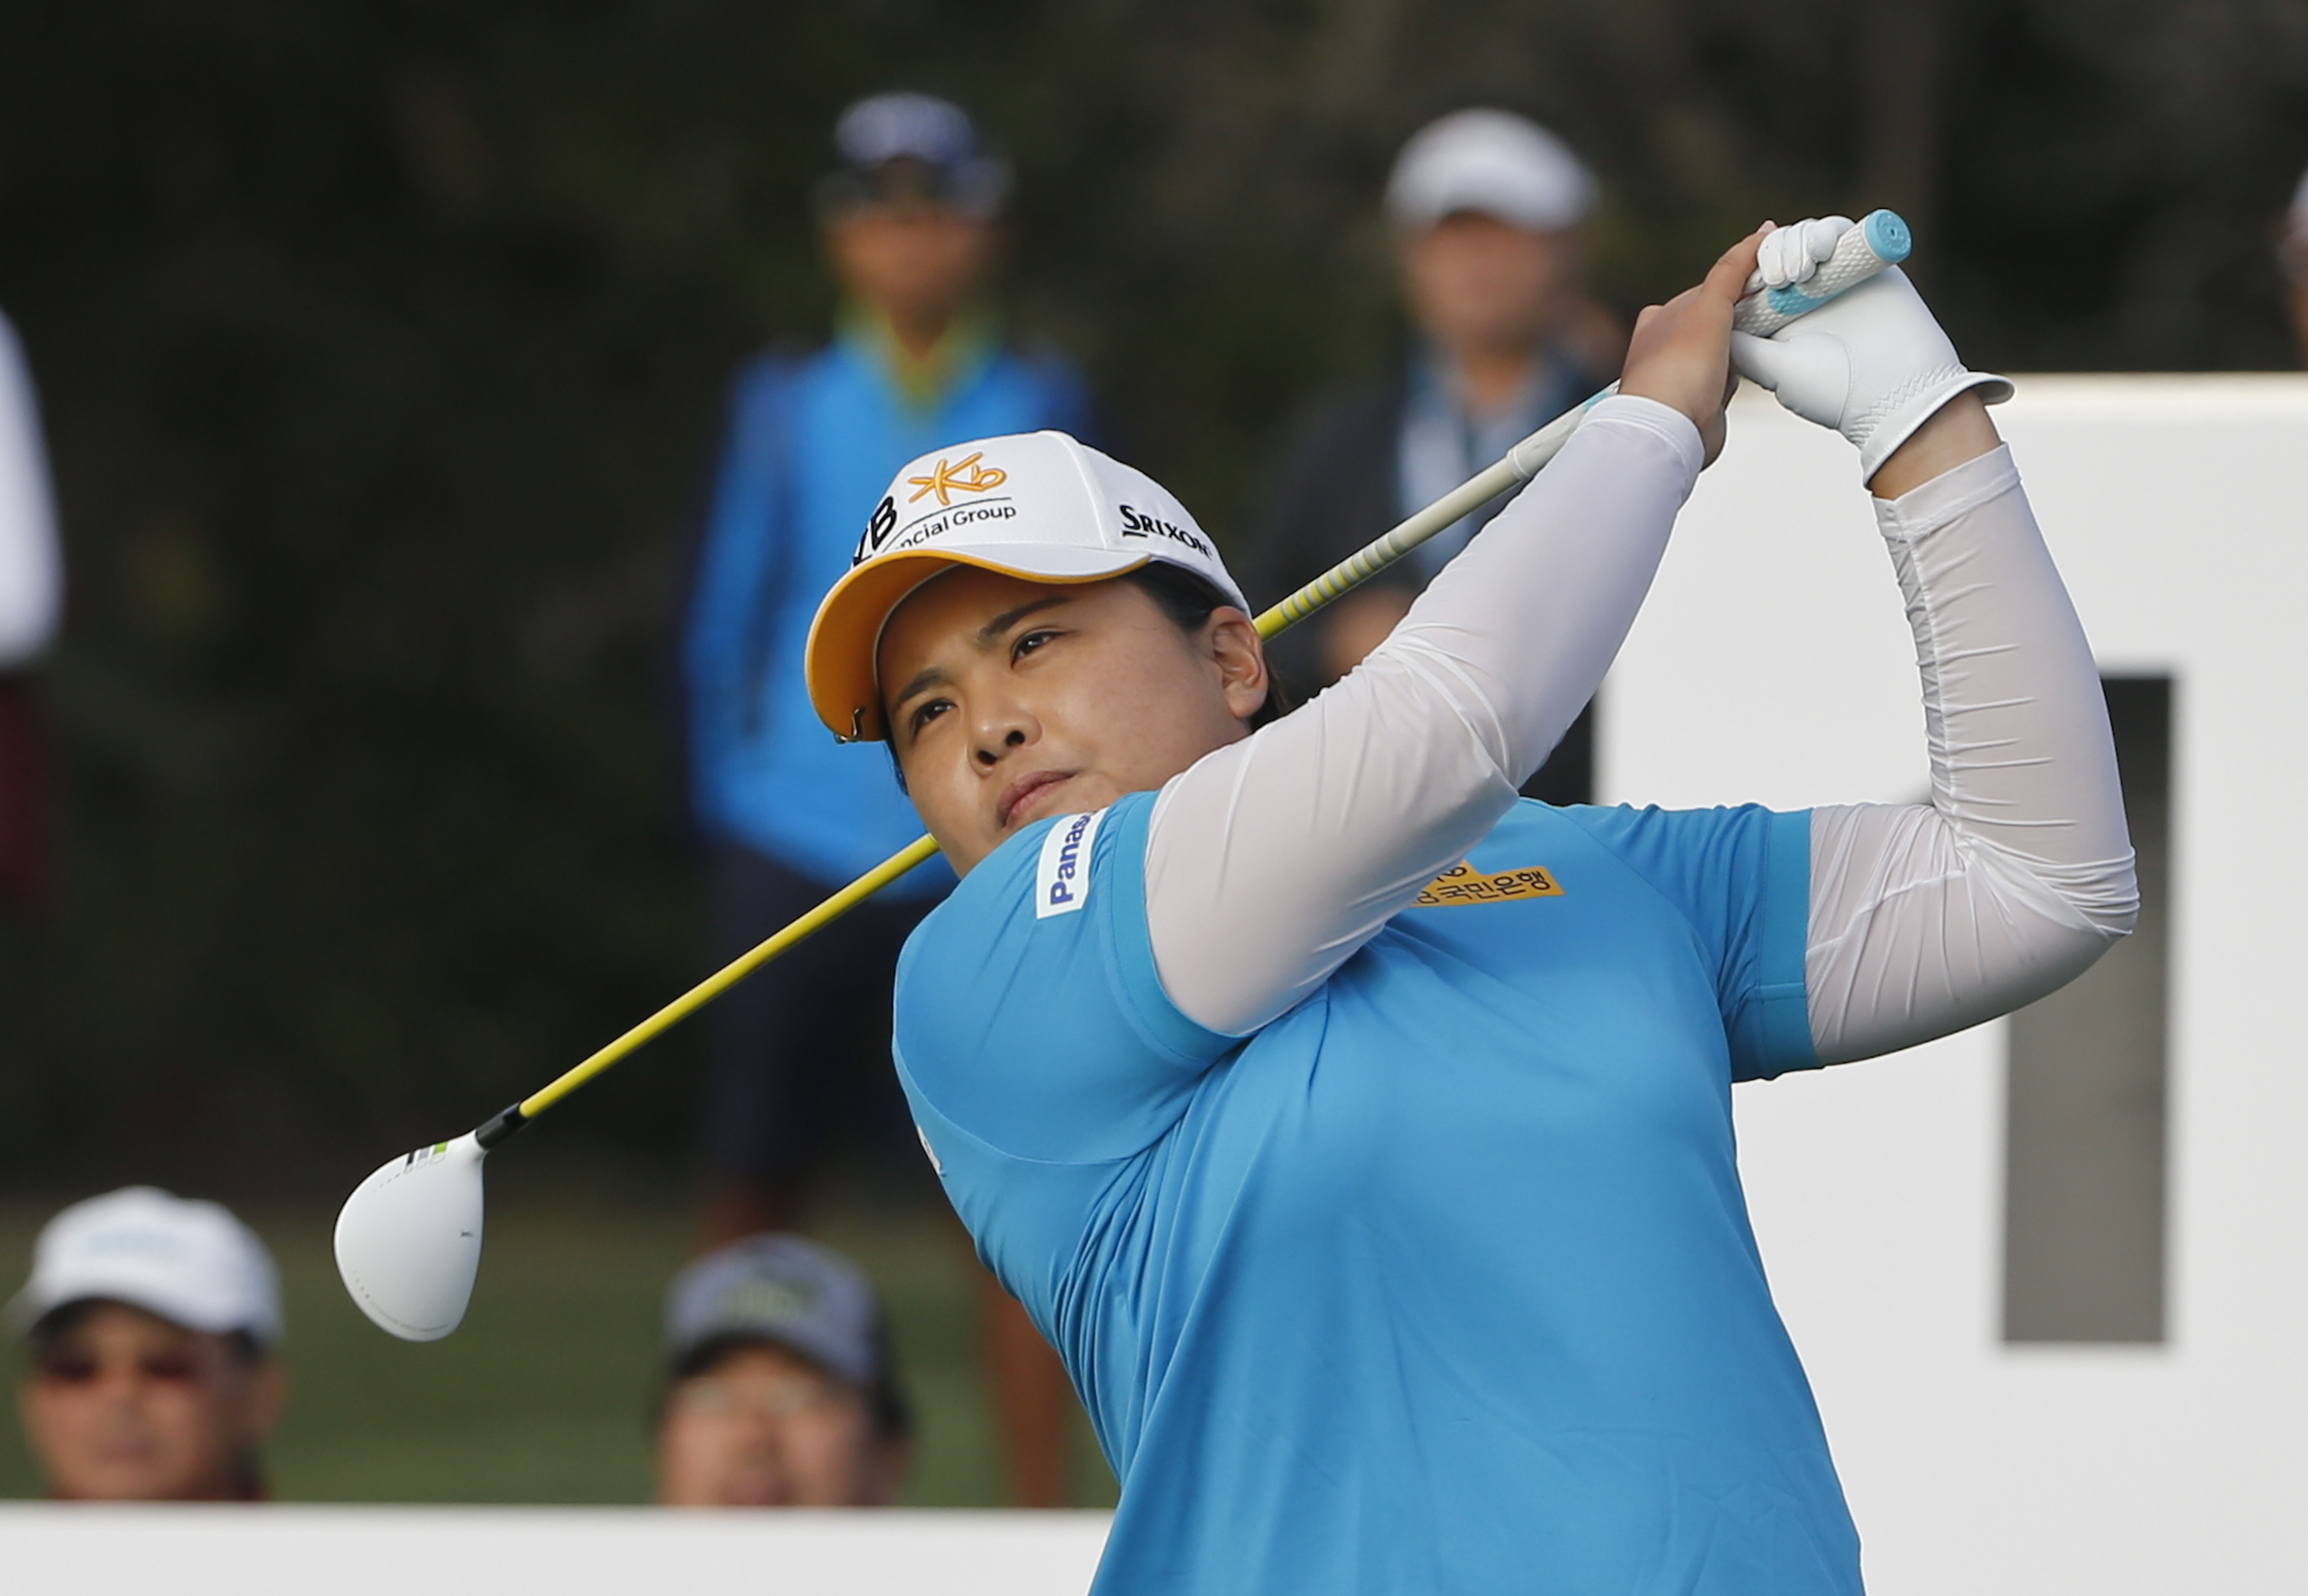 Inbee Park, from South Korea, watches her tee shot on 18th hole during the final round of the Kia Classic women's golf tournament, Sunday, March 27, 2016, in Carlsbad, Calif. Park finished second to Lydia Ko. (AP Photo/Lenny Ignelzi)